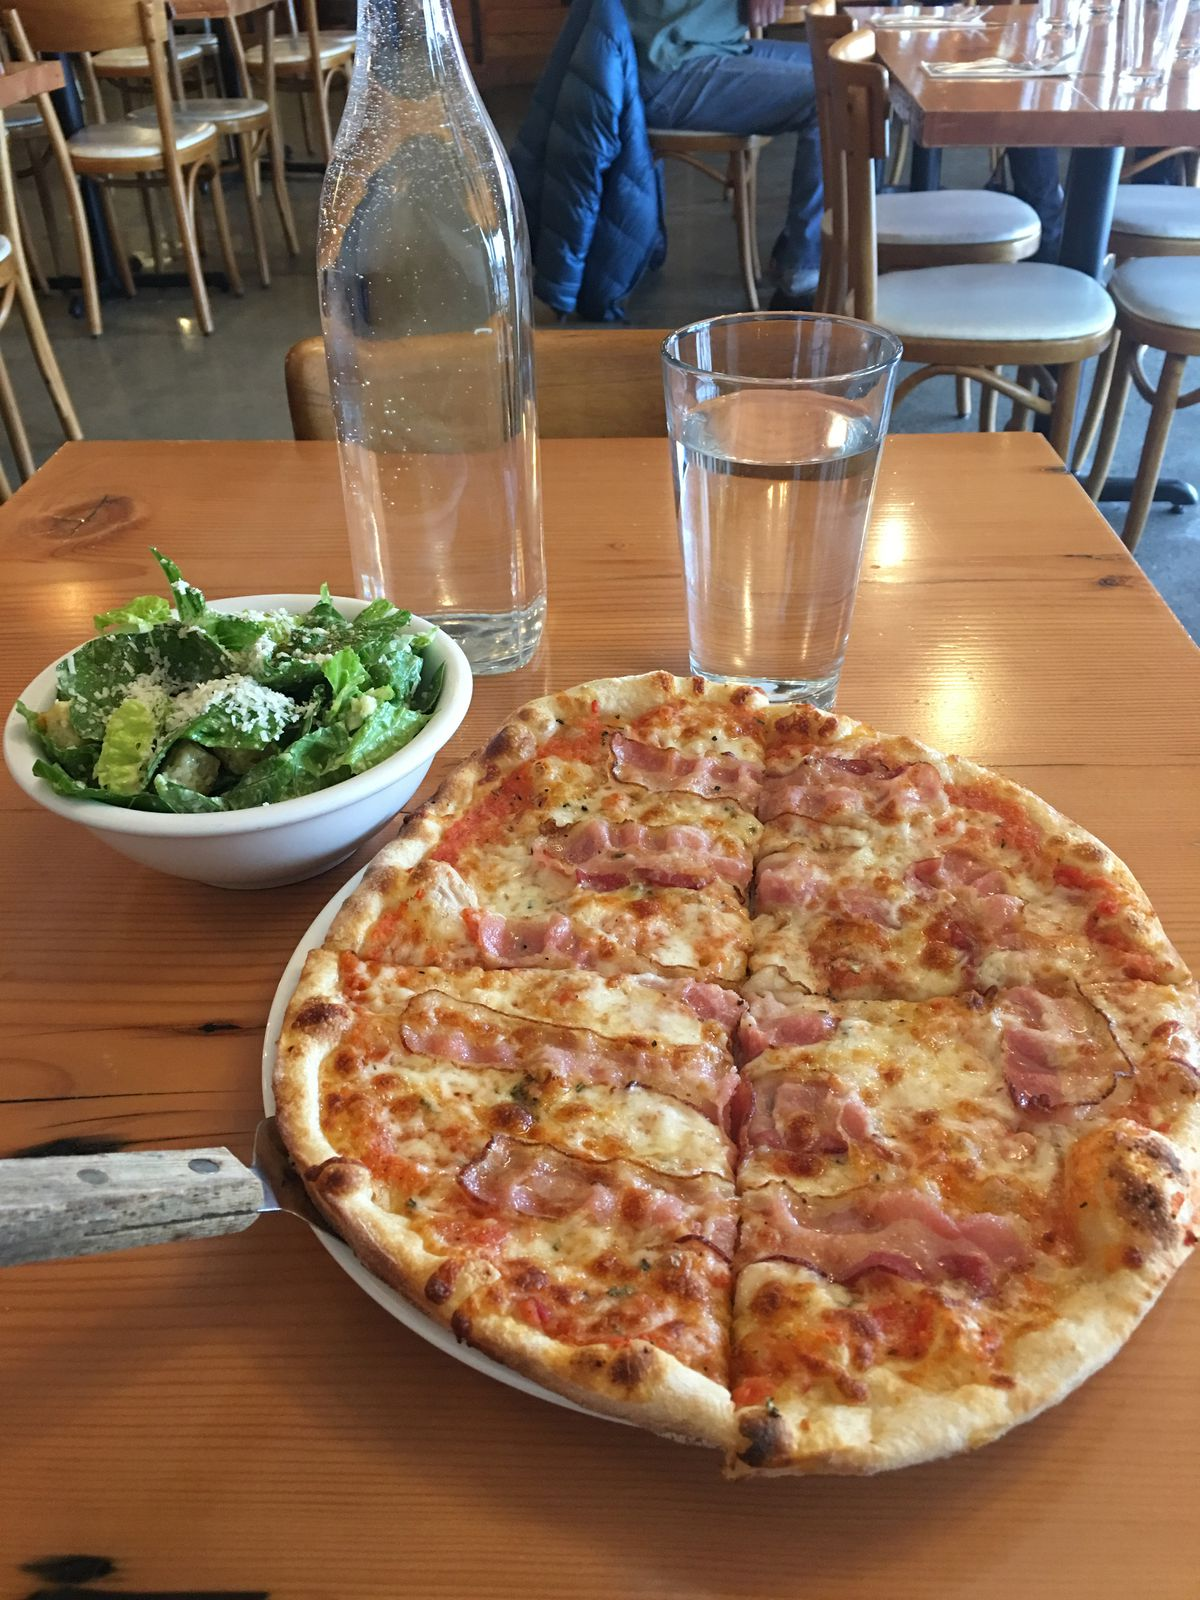 """The lunch special at Hearth includes a personal pan pizza (including the """"Little Piggy"""" pizza) and side salad for $10. (Photo by Mara Severin)"""